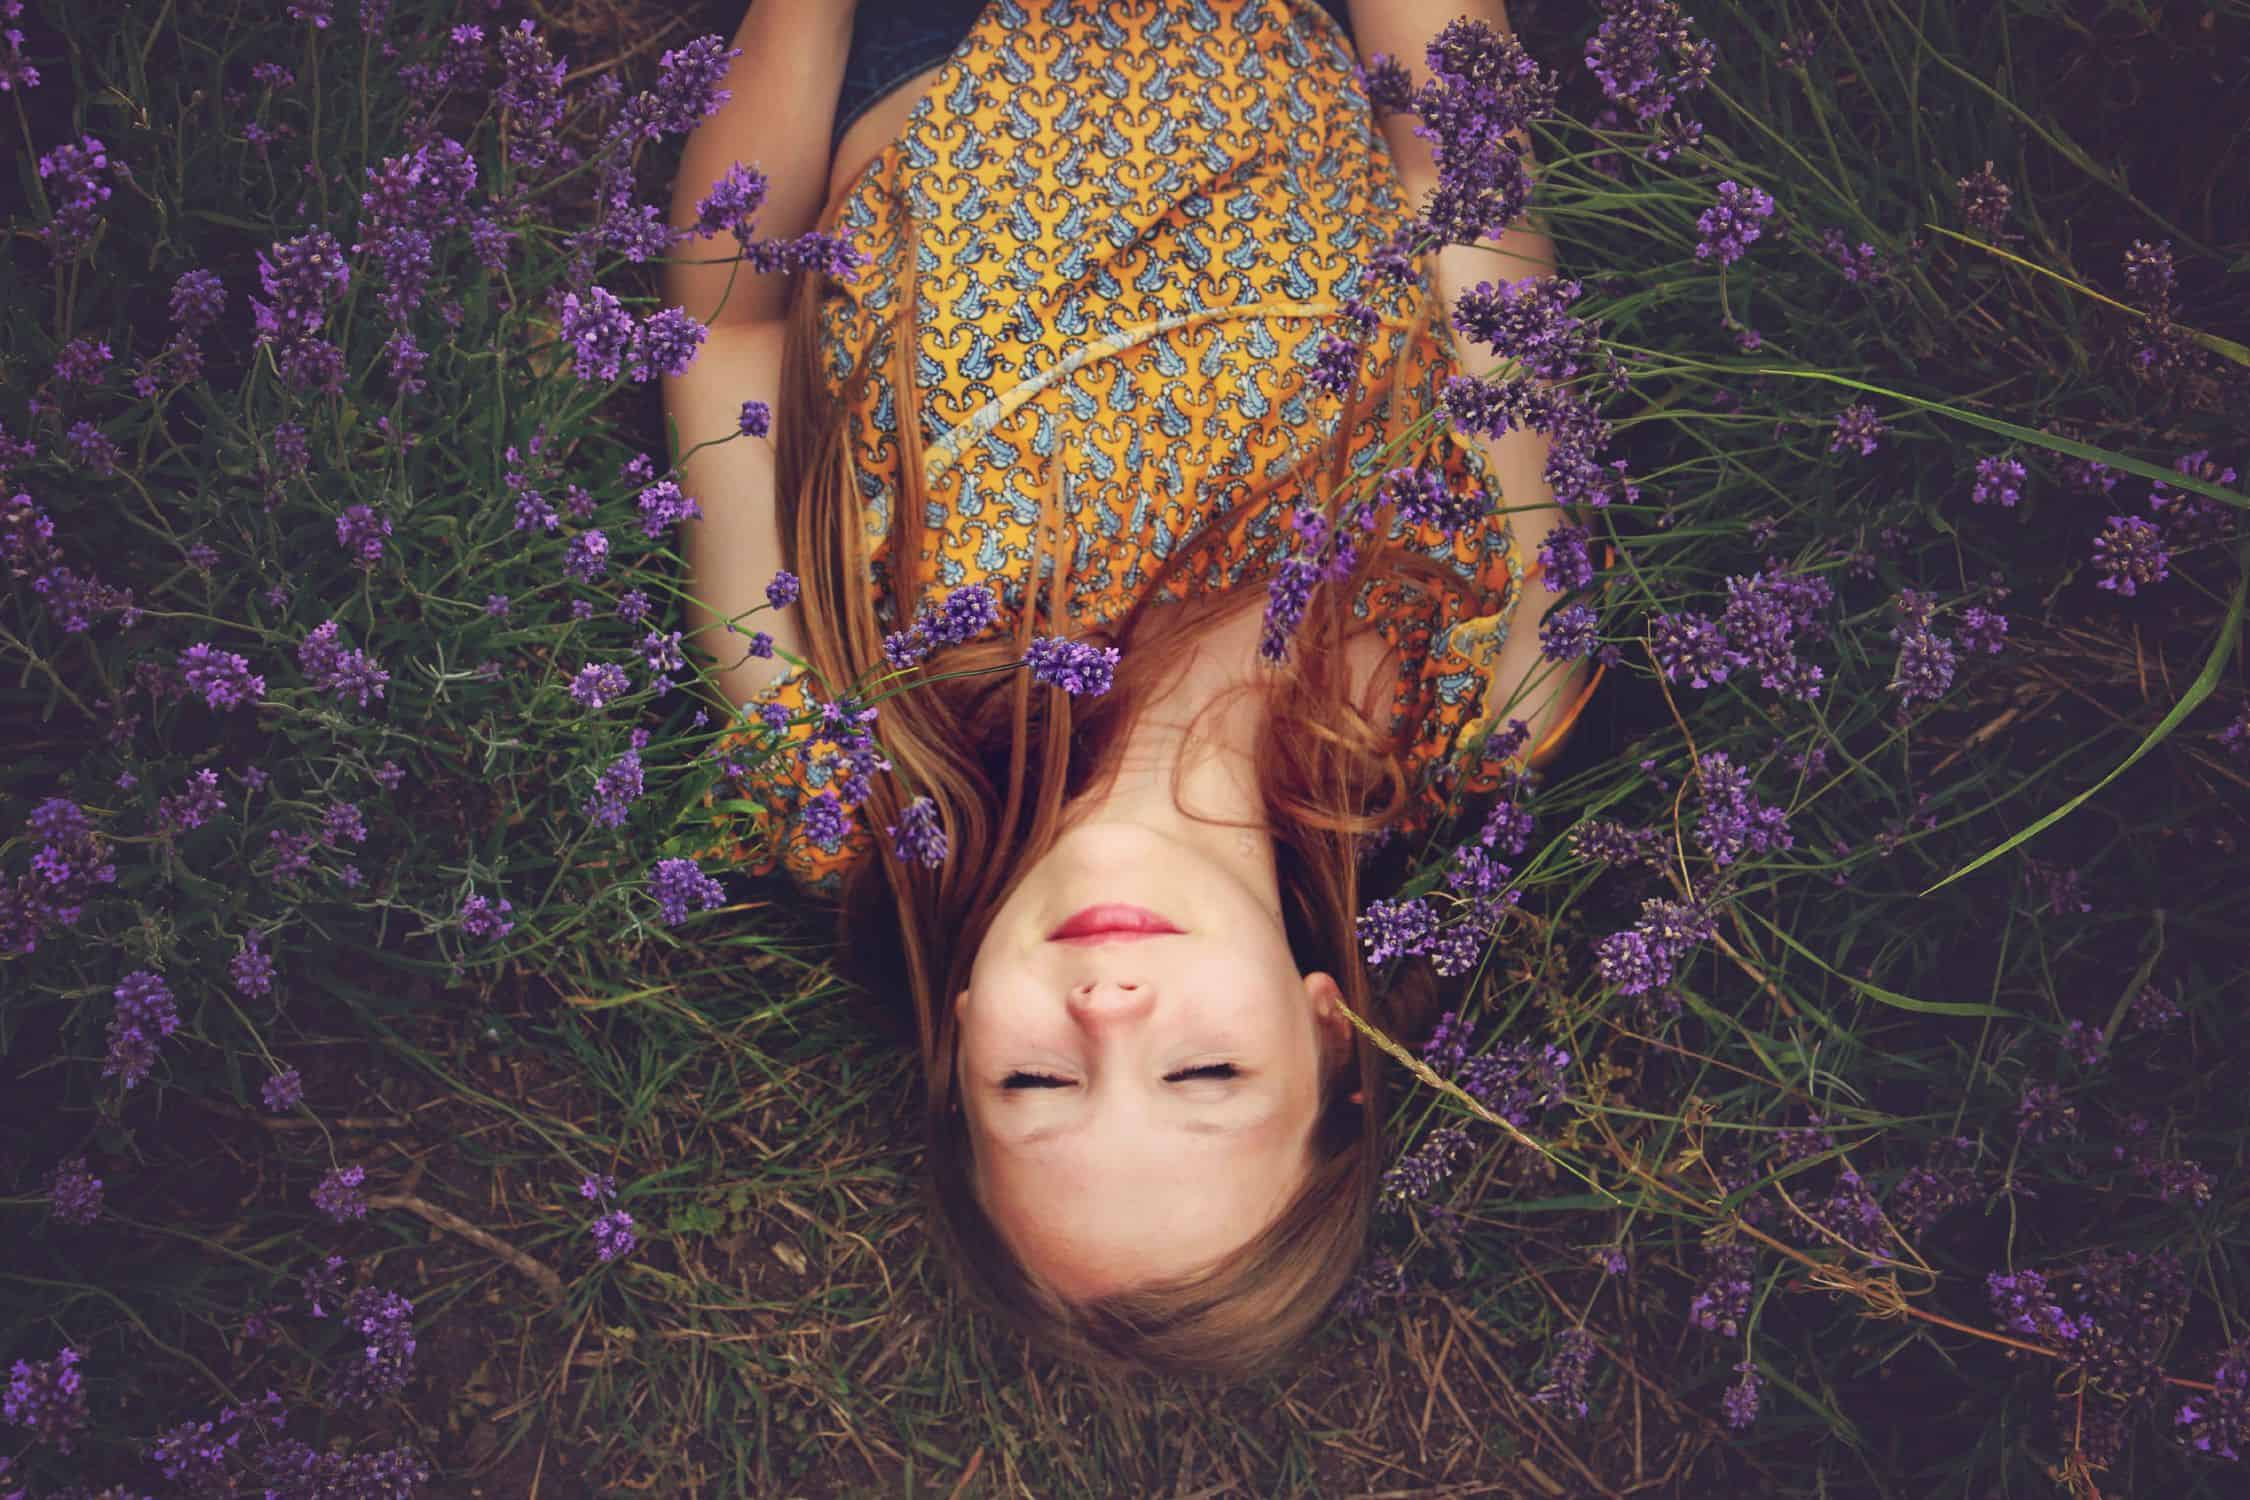 Girl lying in a field of lavender